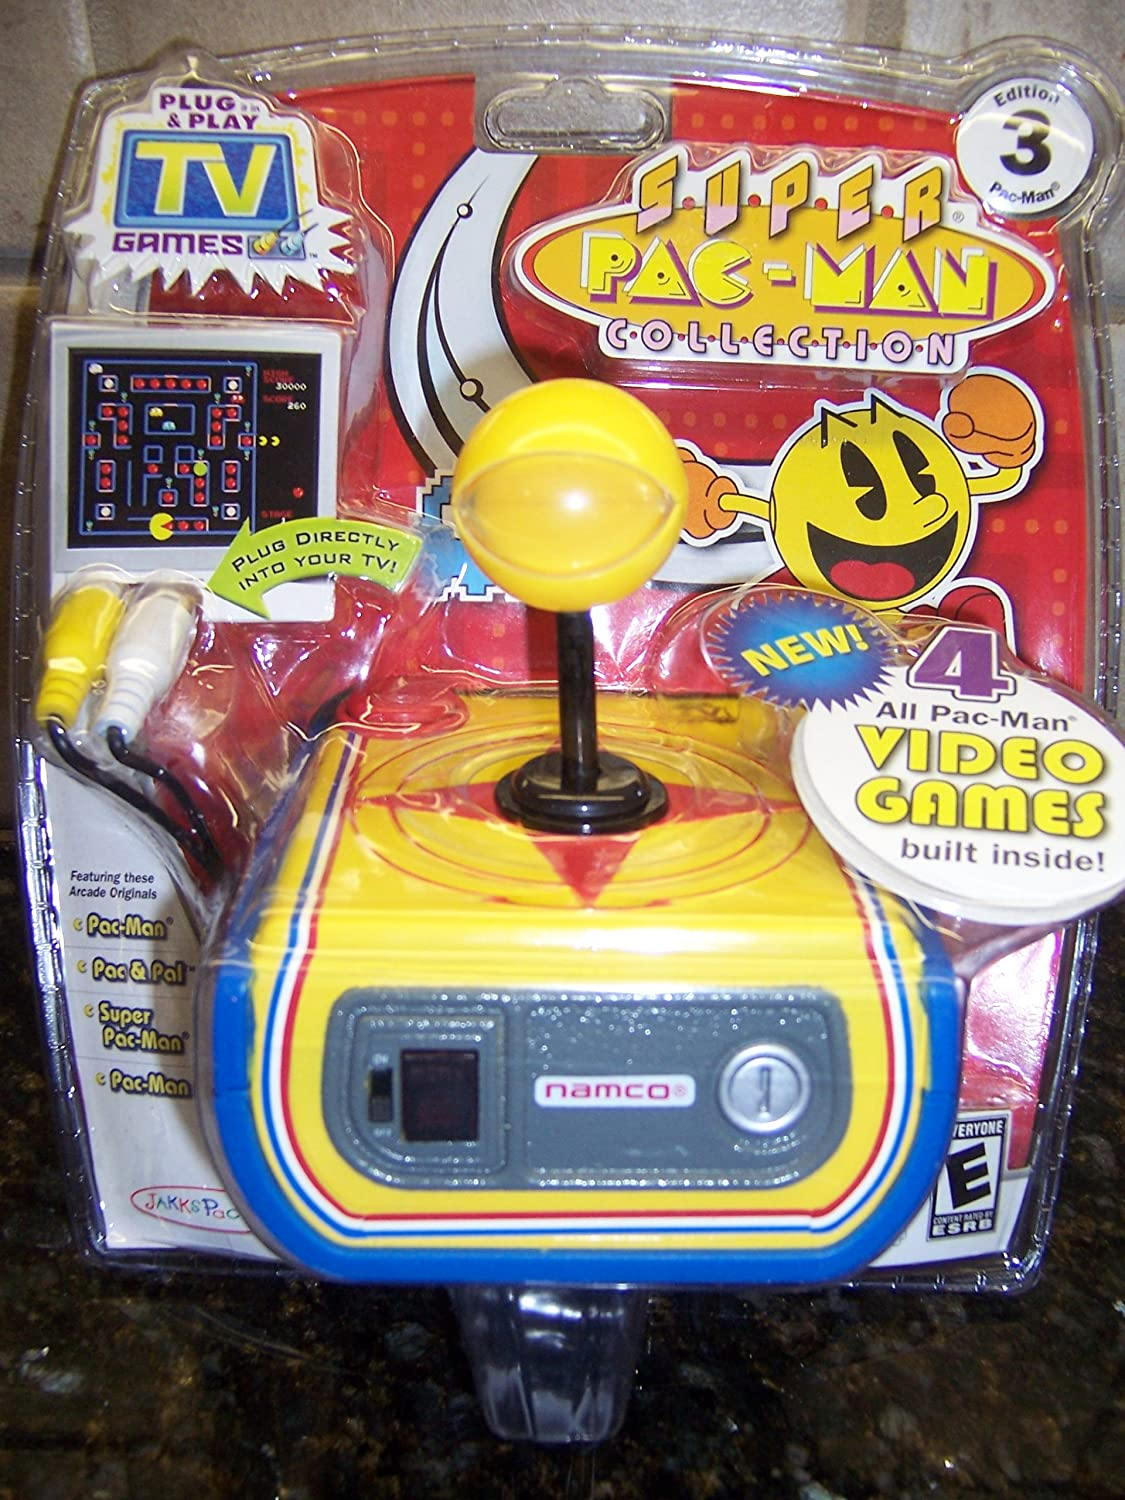 SUPER PAC-MAN COLLECTION: Plug & Play TV Games (BRAND NEW!) Edition 3 B007GPHPR8